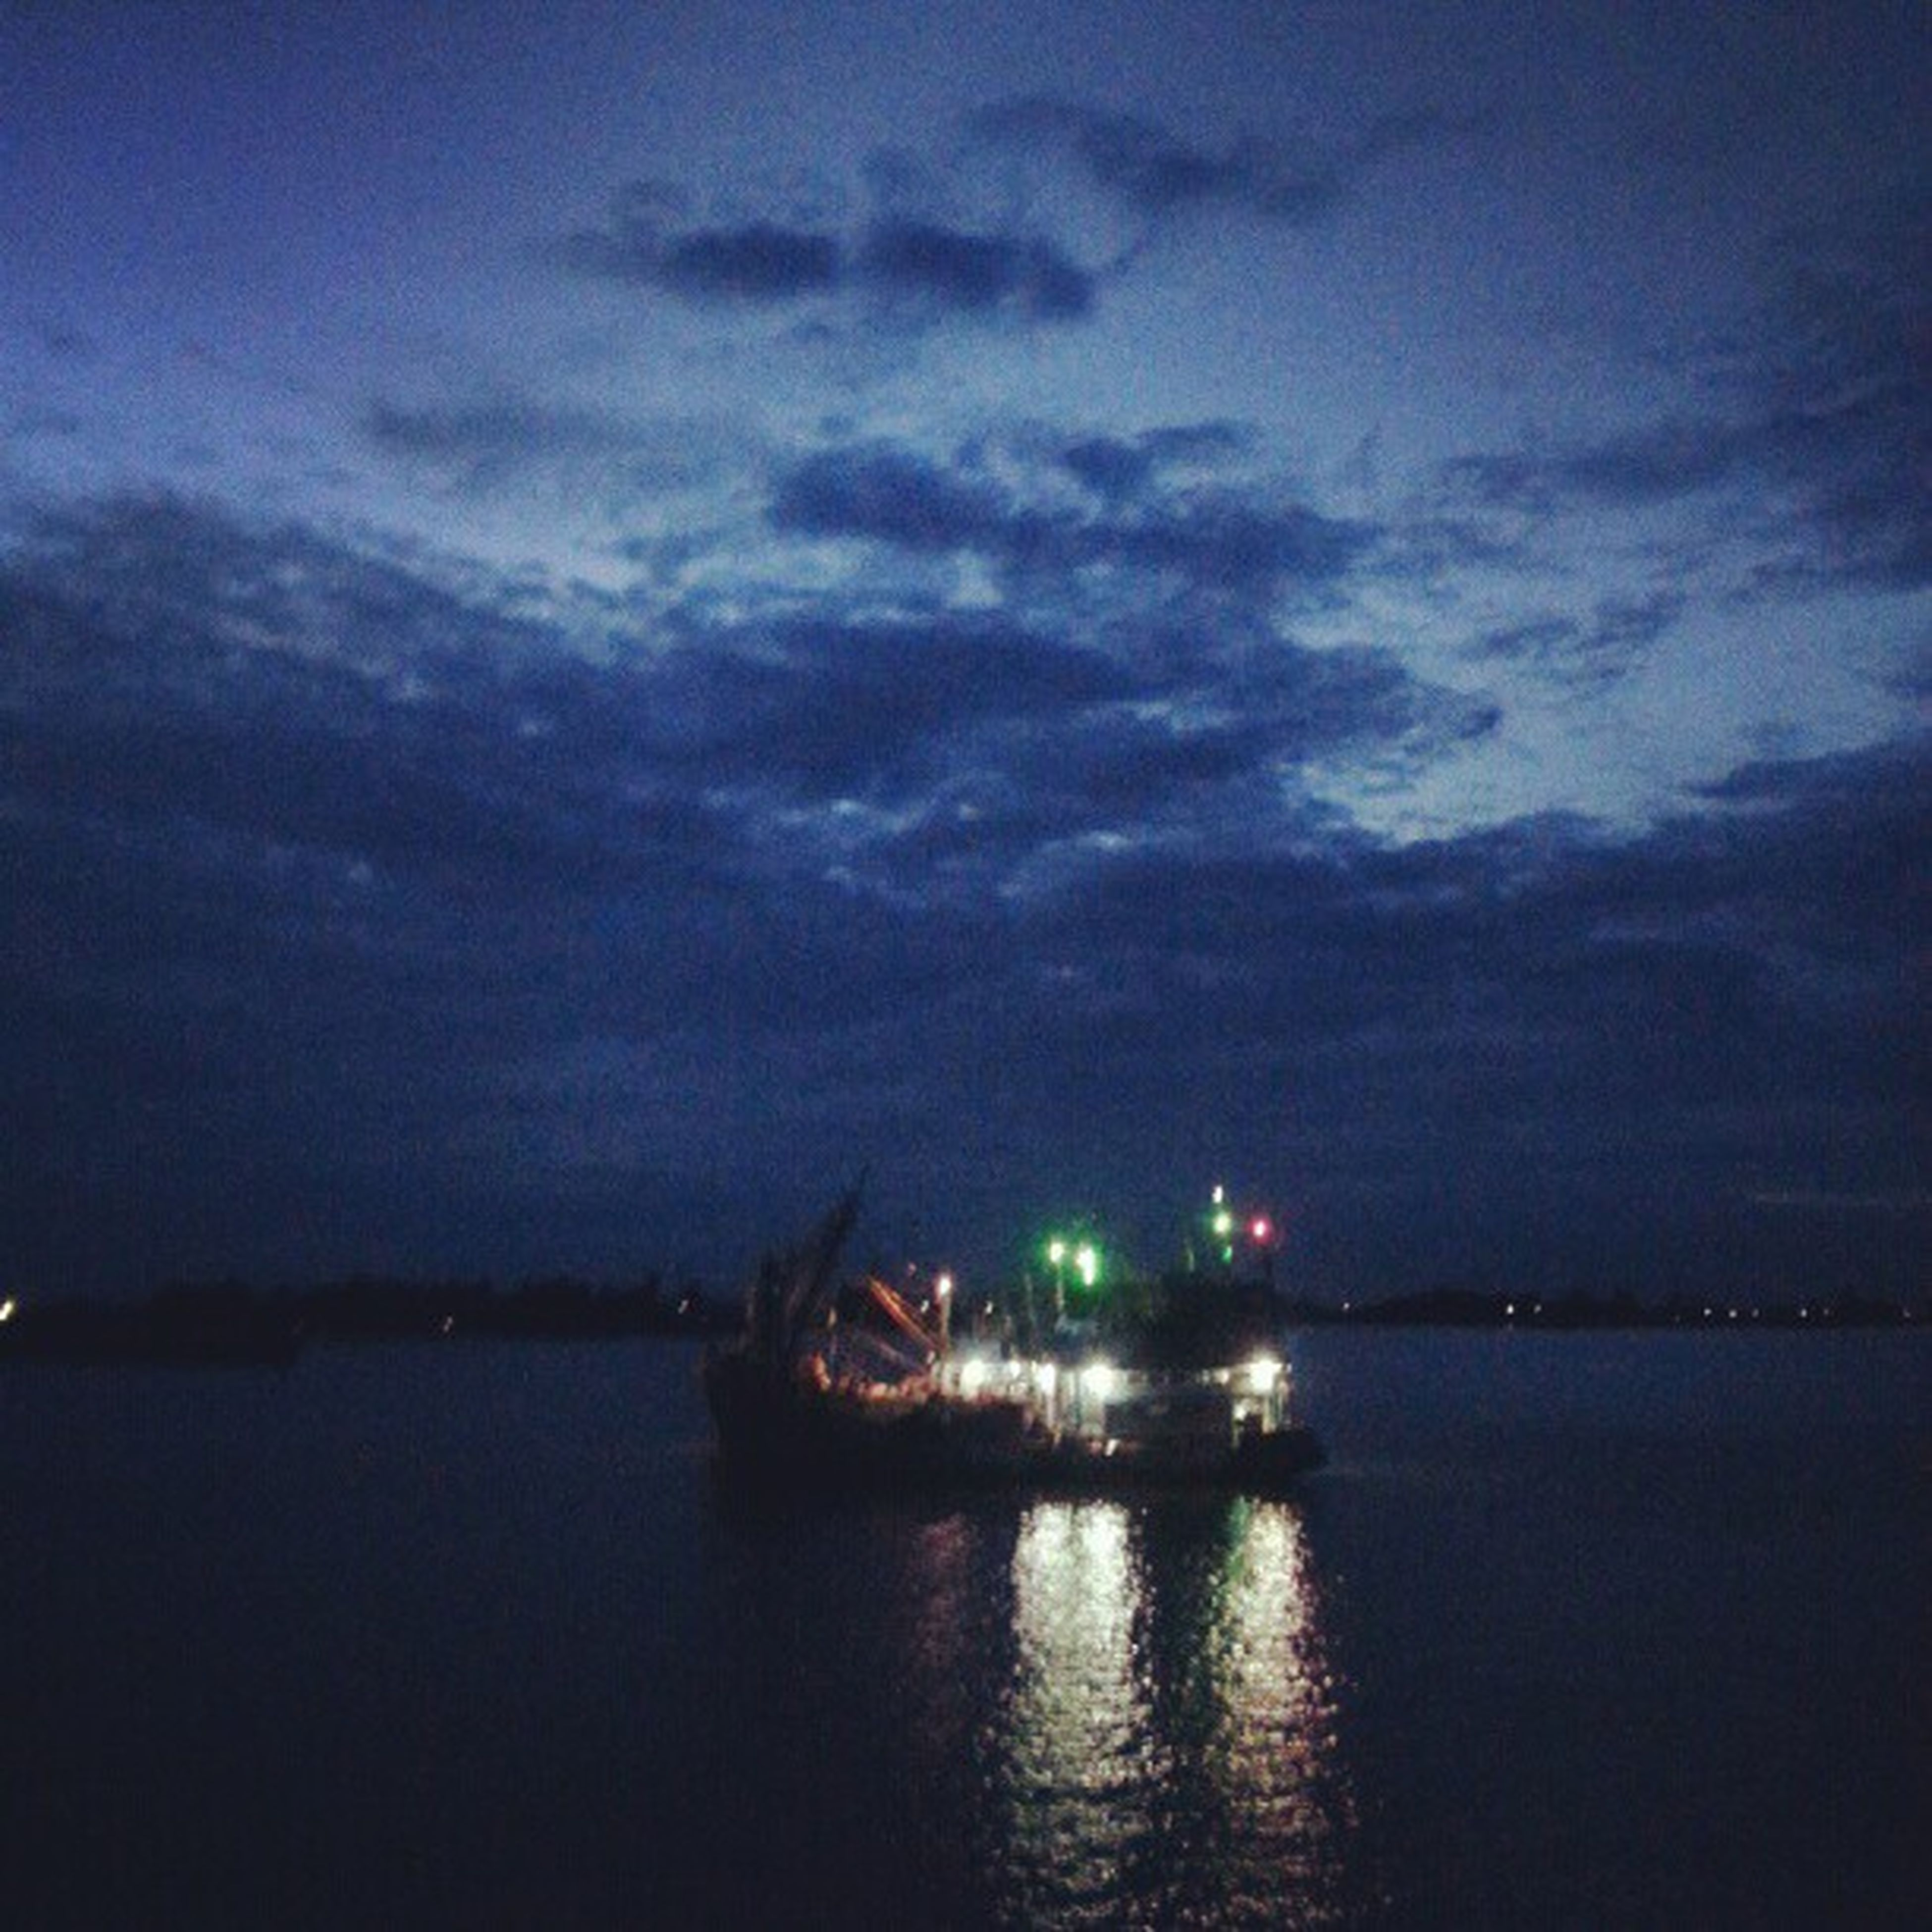 water, waterfront, nautical vessel, sky, transportation, mode of transport, boat, cloud - sky, sea, illuminated, reflection, tranquility, tranquil scene, scenics, beauty in nature, night, nature, river, dusk, cloud